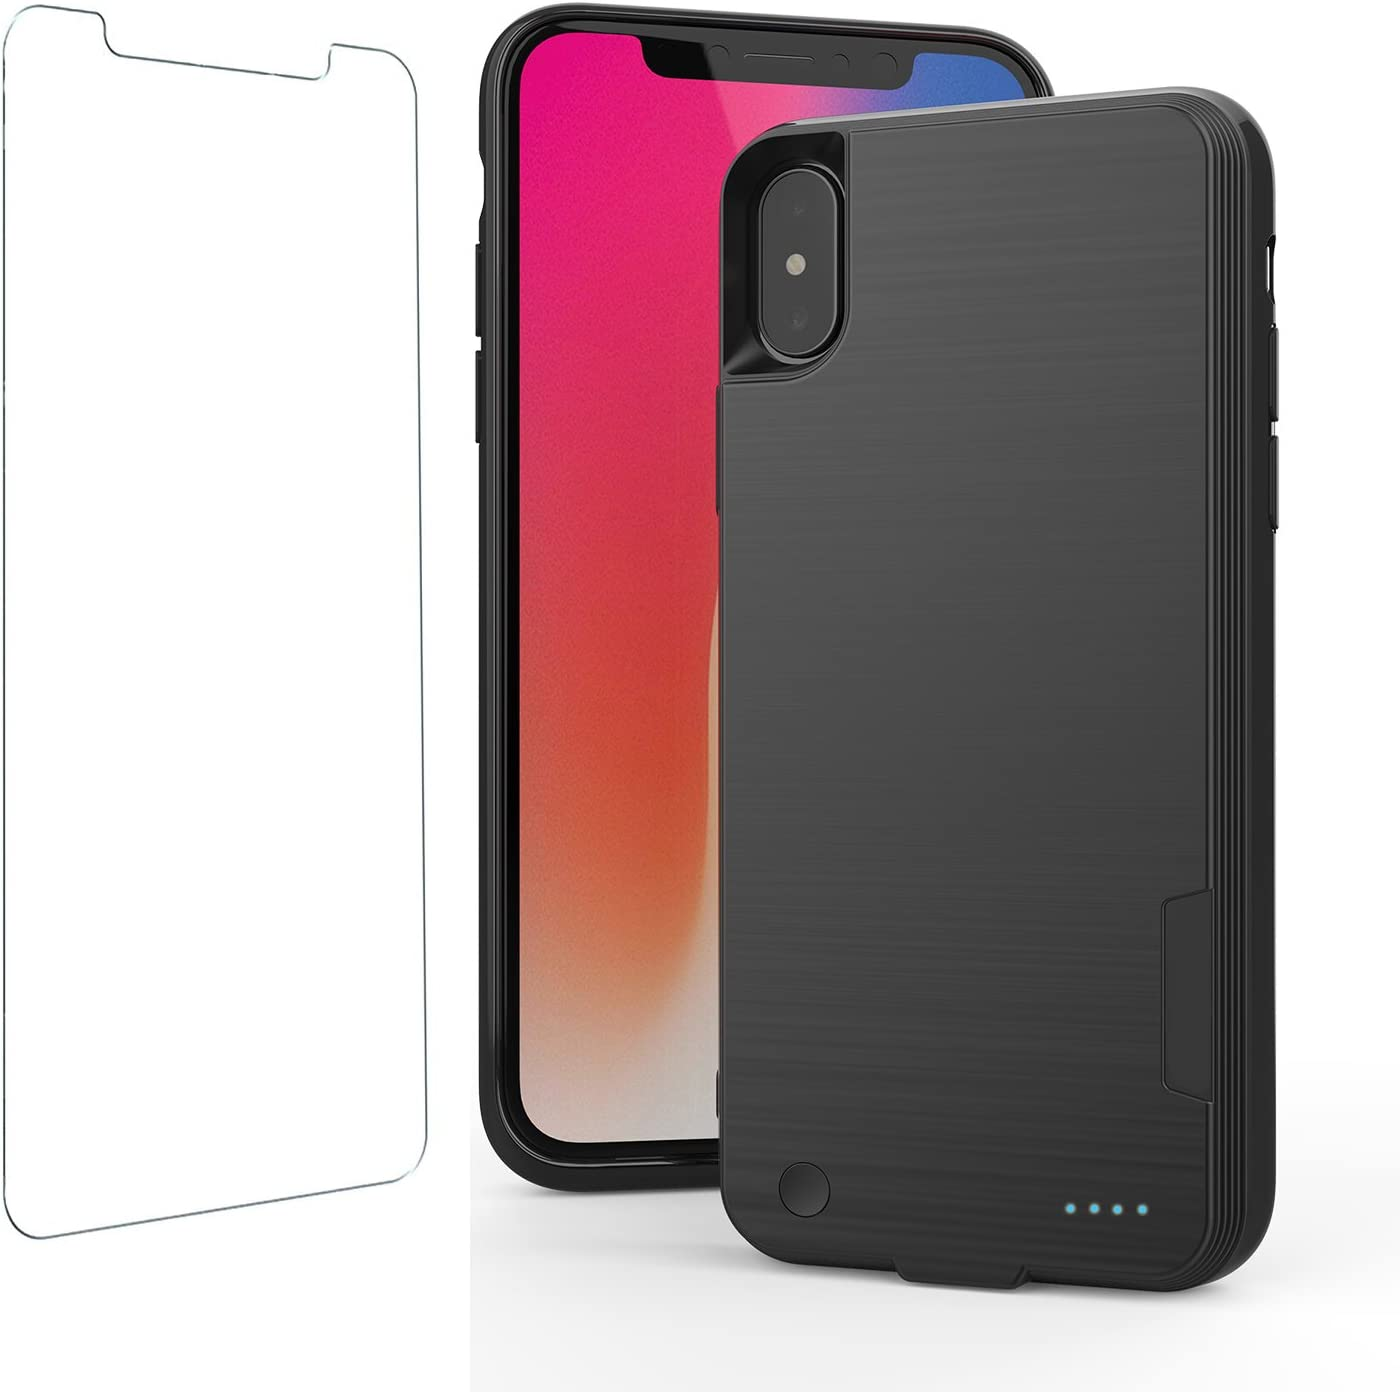 iPhone X Battery Case with QI Wireless Charging, iphone x Power Bank with Wireless Charging 5.8 inch 4000mAh Slim Extended Portable Battery Backup